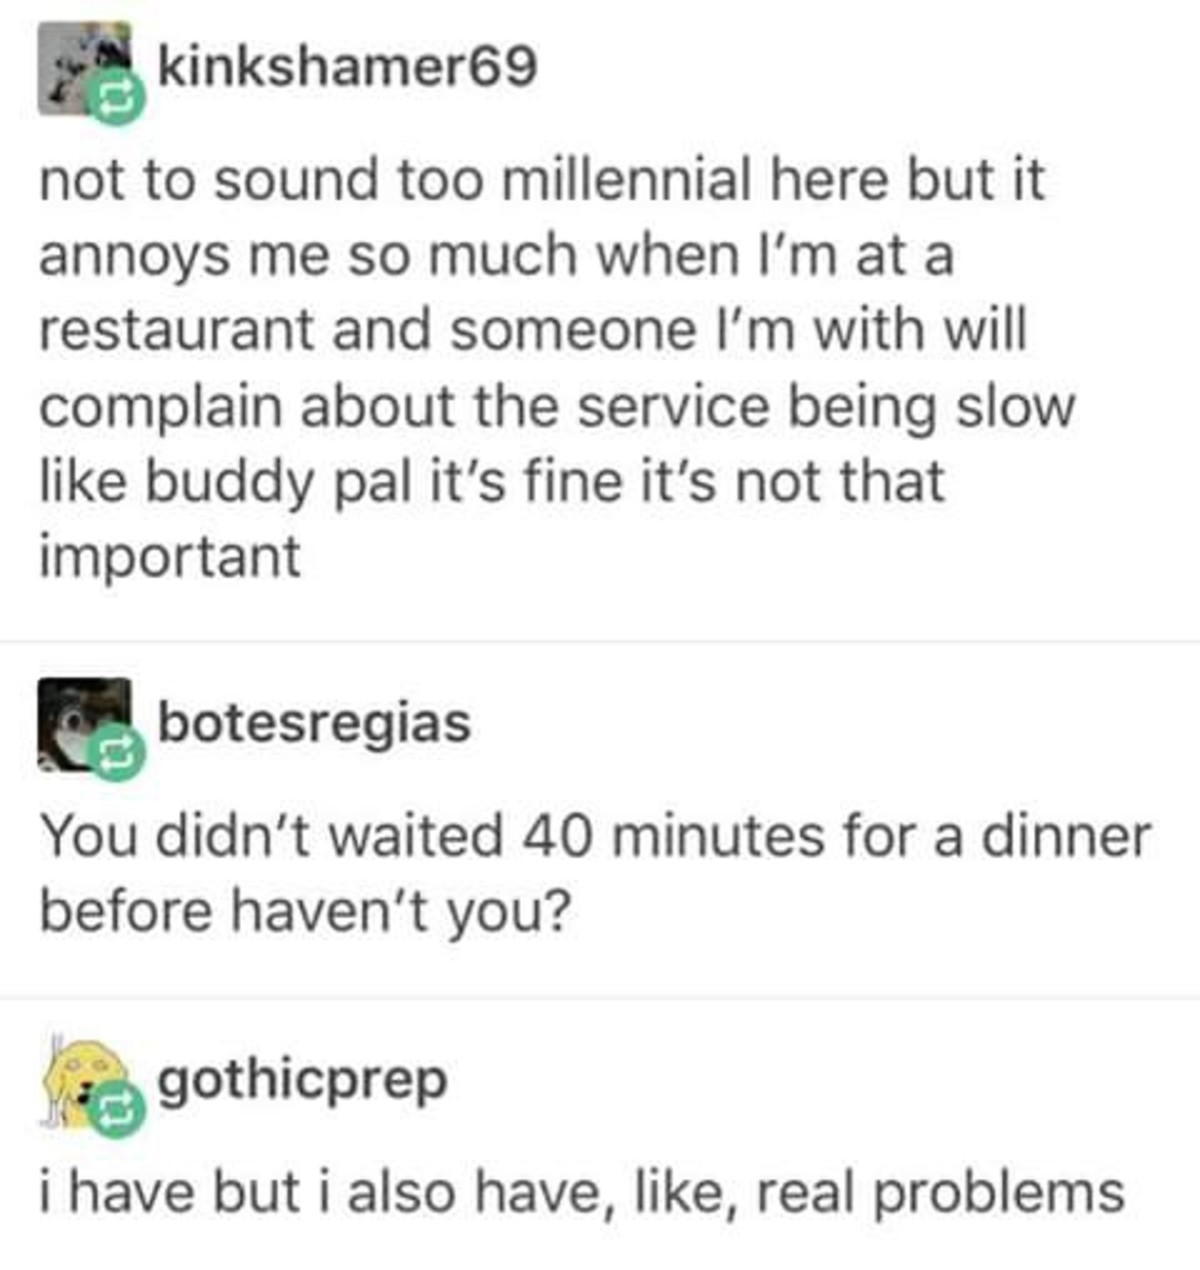 smooth ignorant available Vulture. .. As a millennial, I don't know what he's on about. There's a finite number of people that a restaurant can hold. If I'm sitting at a table, there's a reasonable